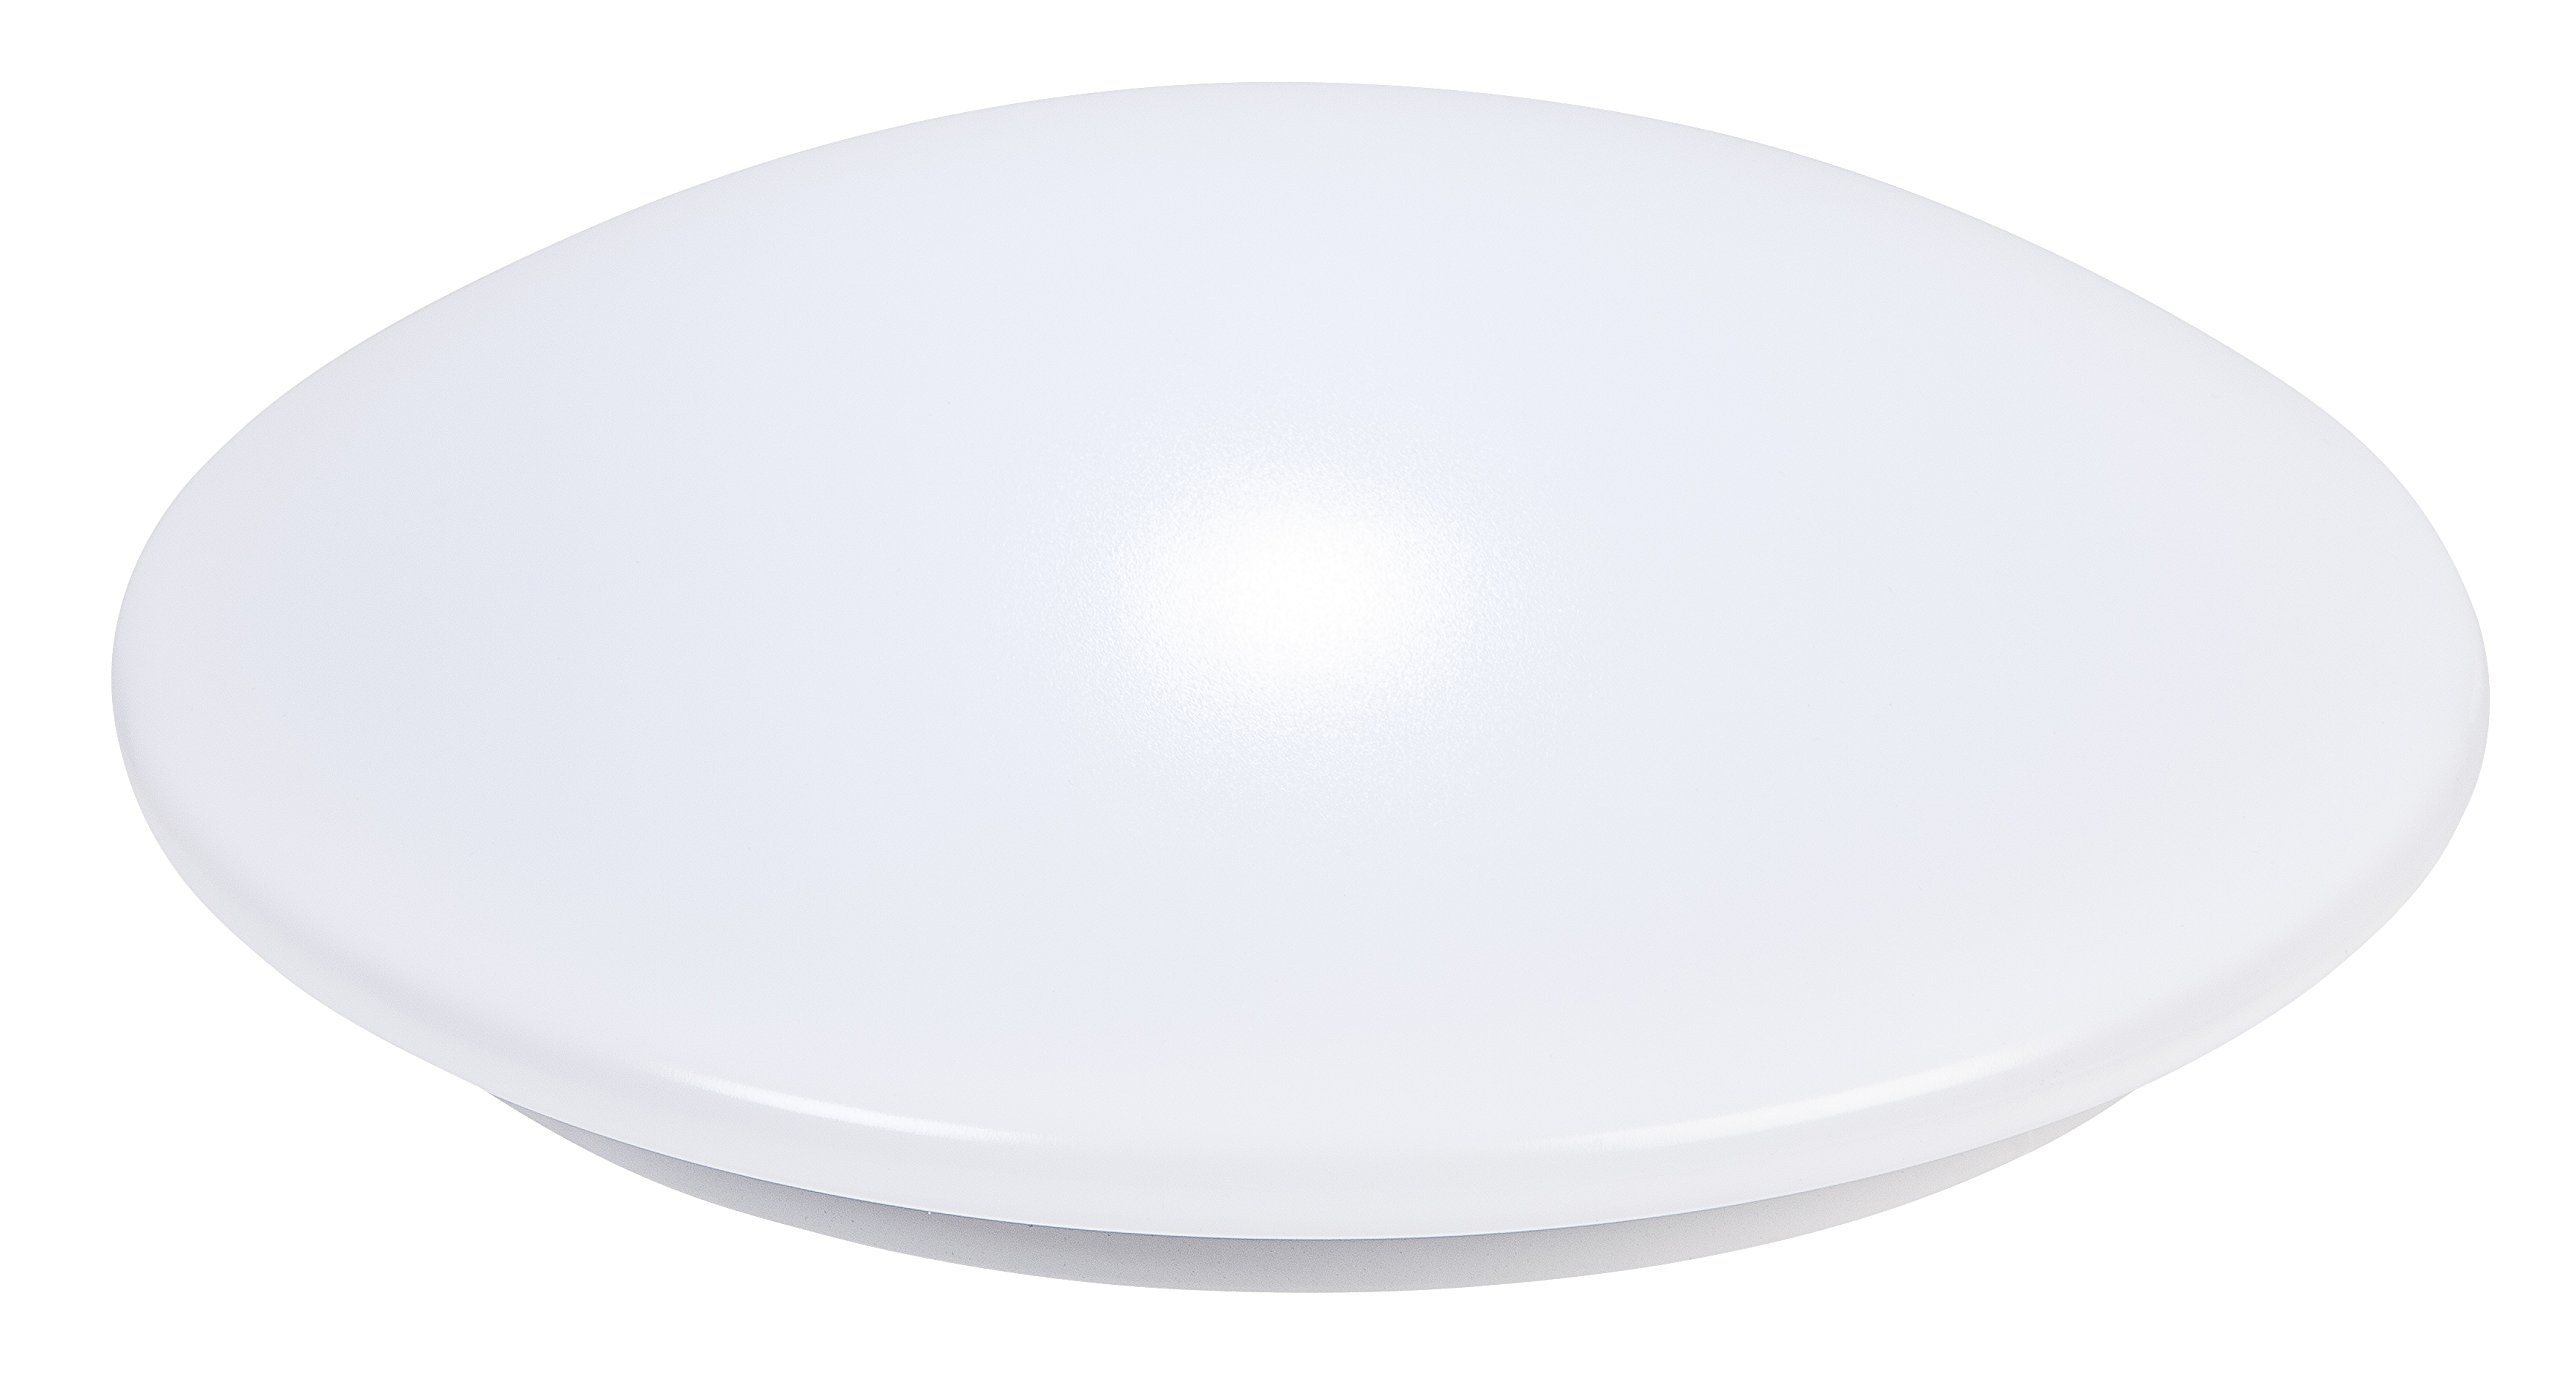 "IRIS USA  Ohyama Lights 399645 LED 14"" Round Ceiling Light, 22 Watts, 4000K color temperature,  1550 lumens by IRIS USA, Inc."